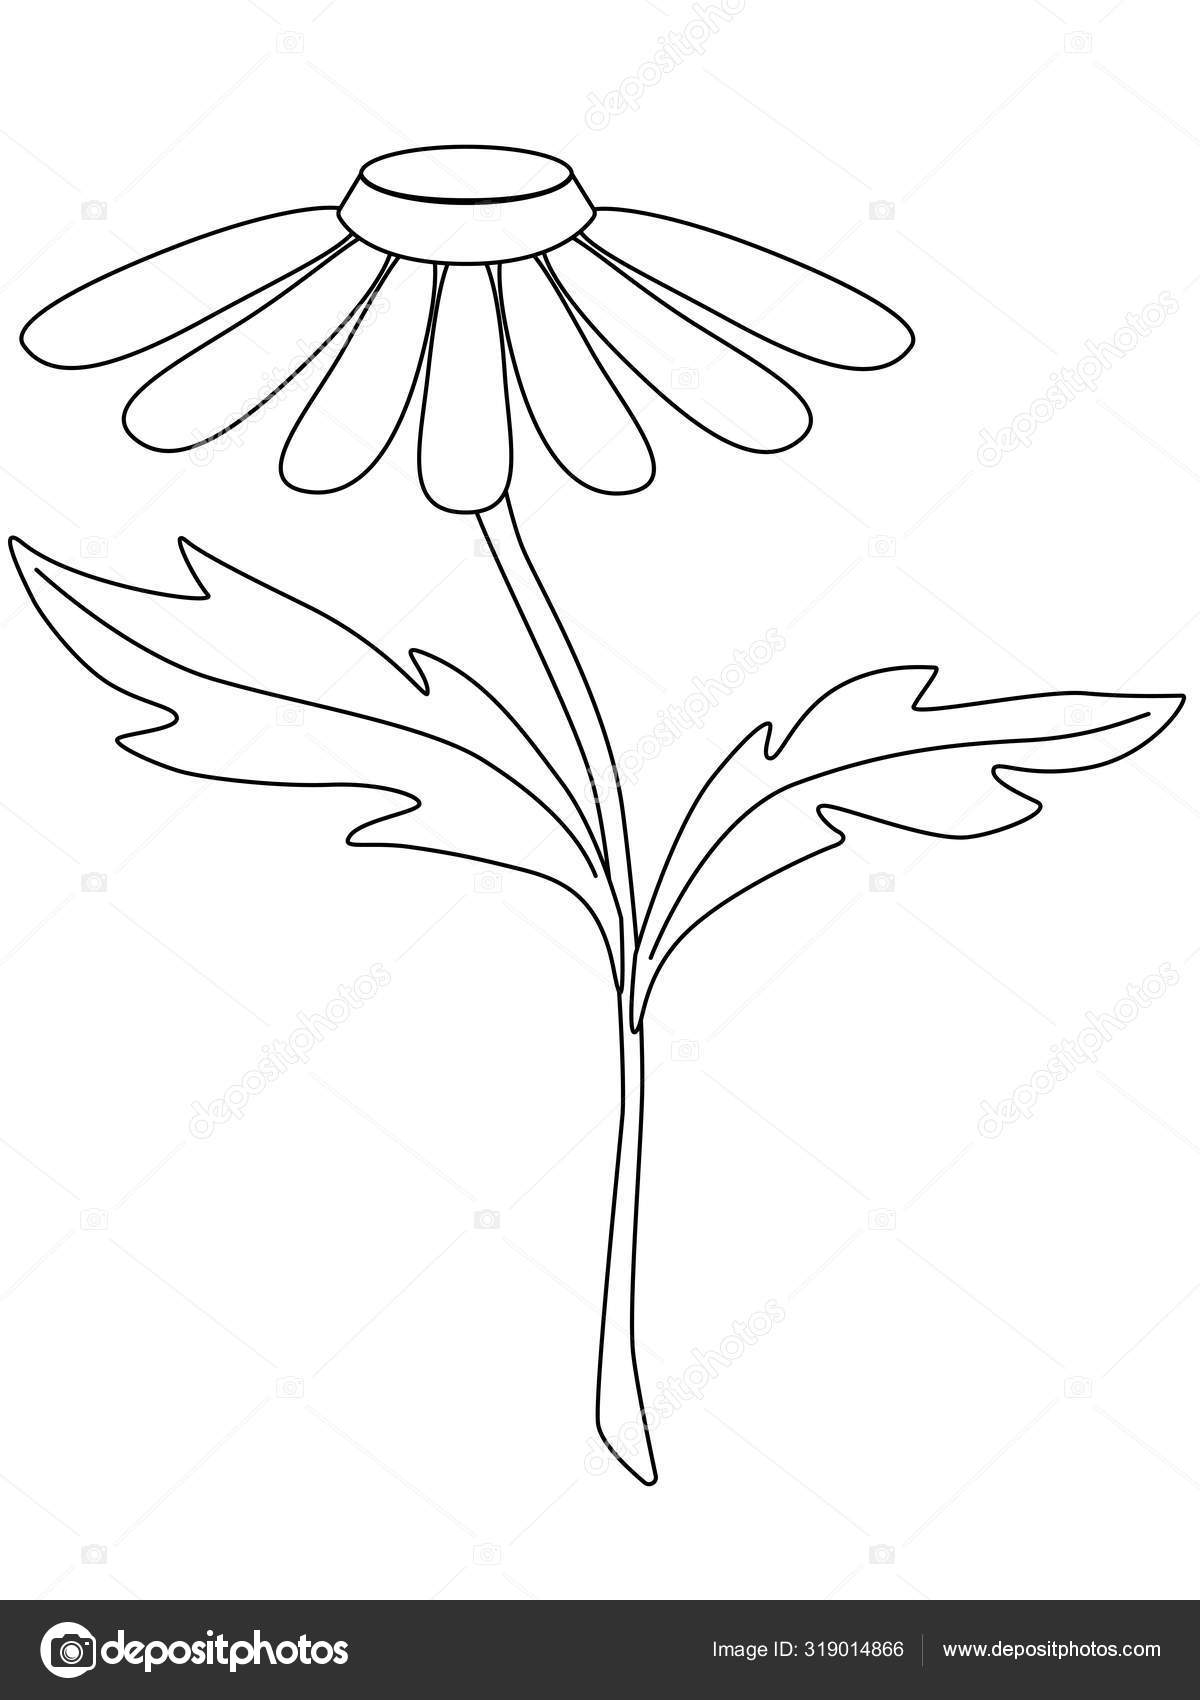 Chamomile Garden Chamomile Flower Stem Two Leaves Decorative Camomile Bouquets Stock Vector C Disaanna 319014866